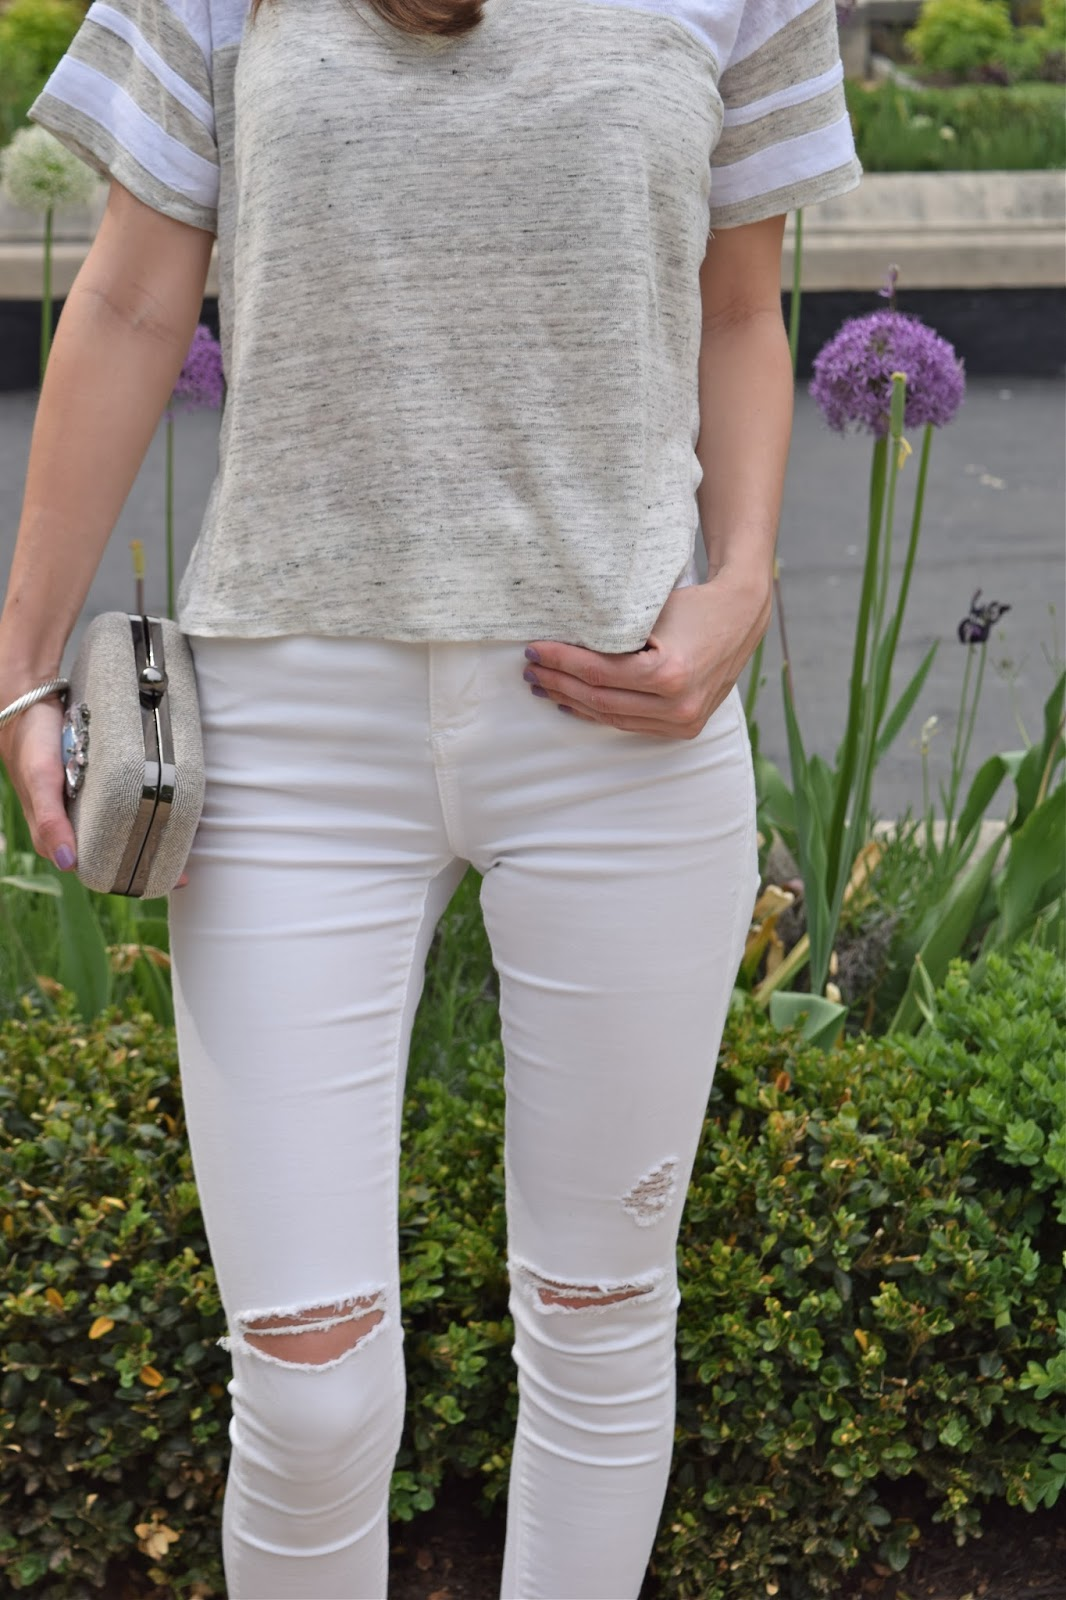 Forever21 varsity style crop top, Top Shop white destroyed skinny jeans